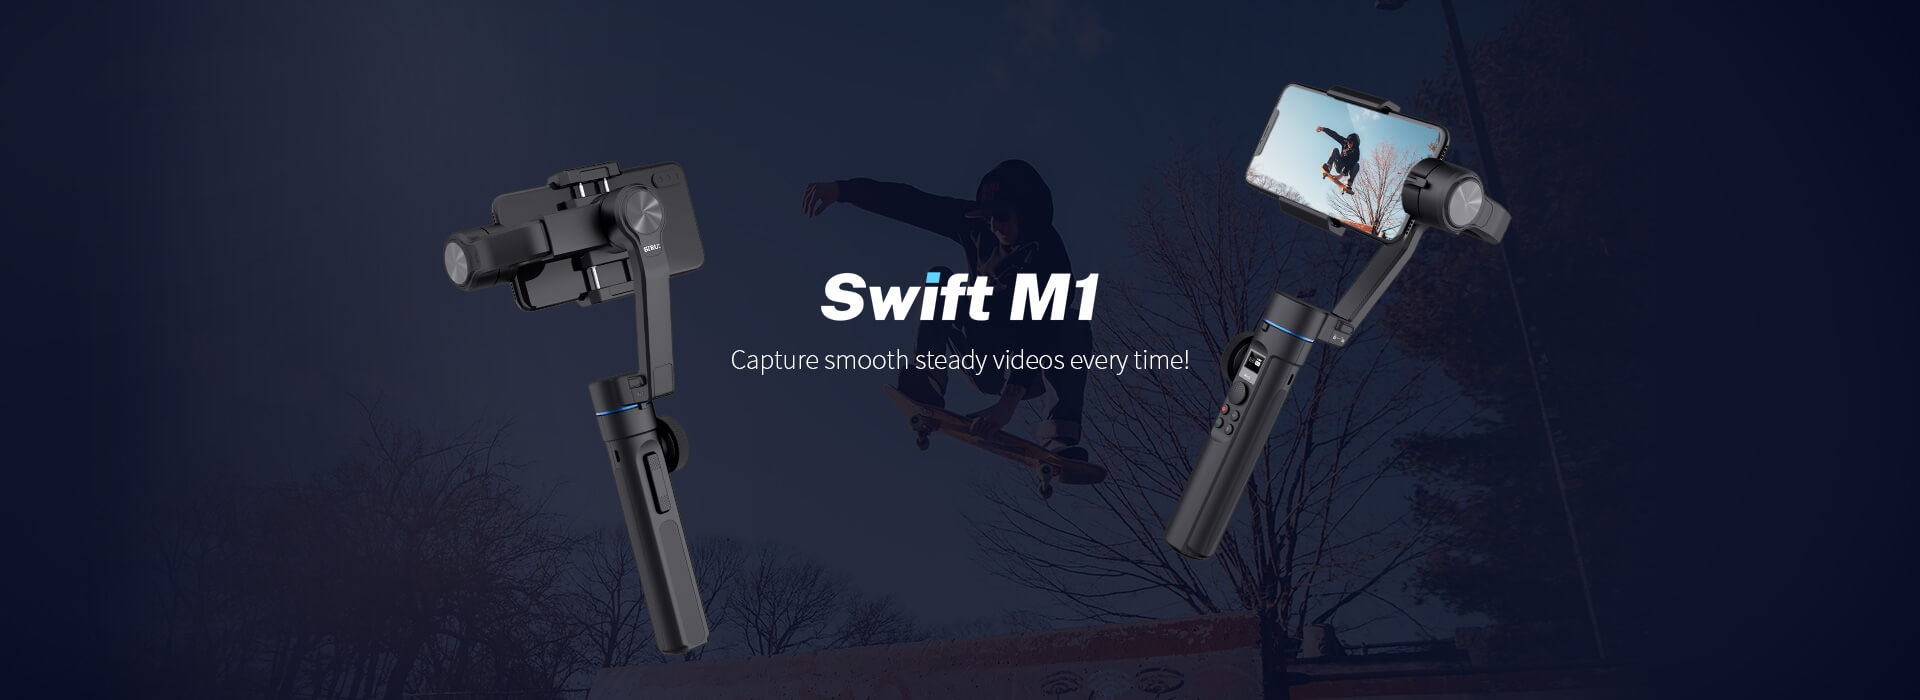 SIRUI SWIFT M1 GIMBAL